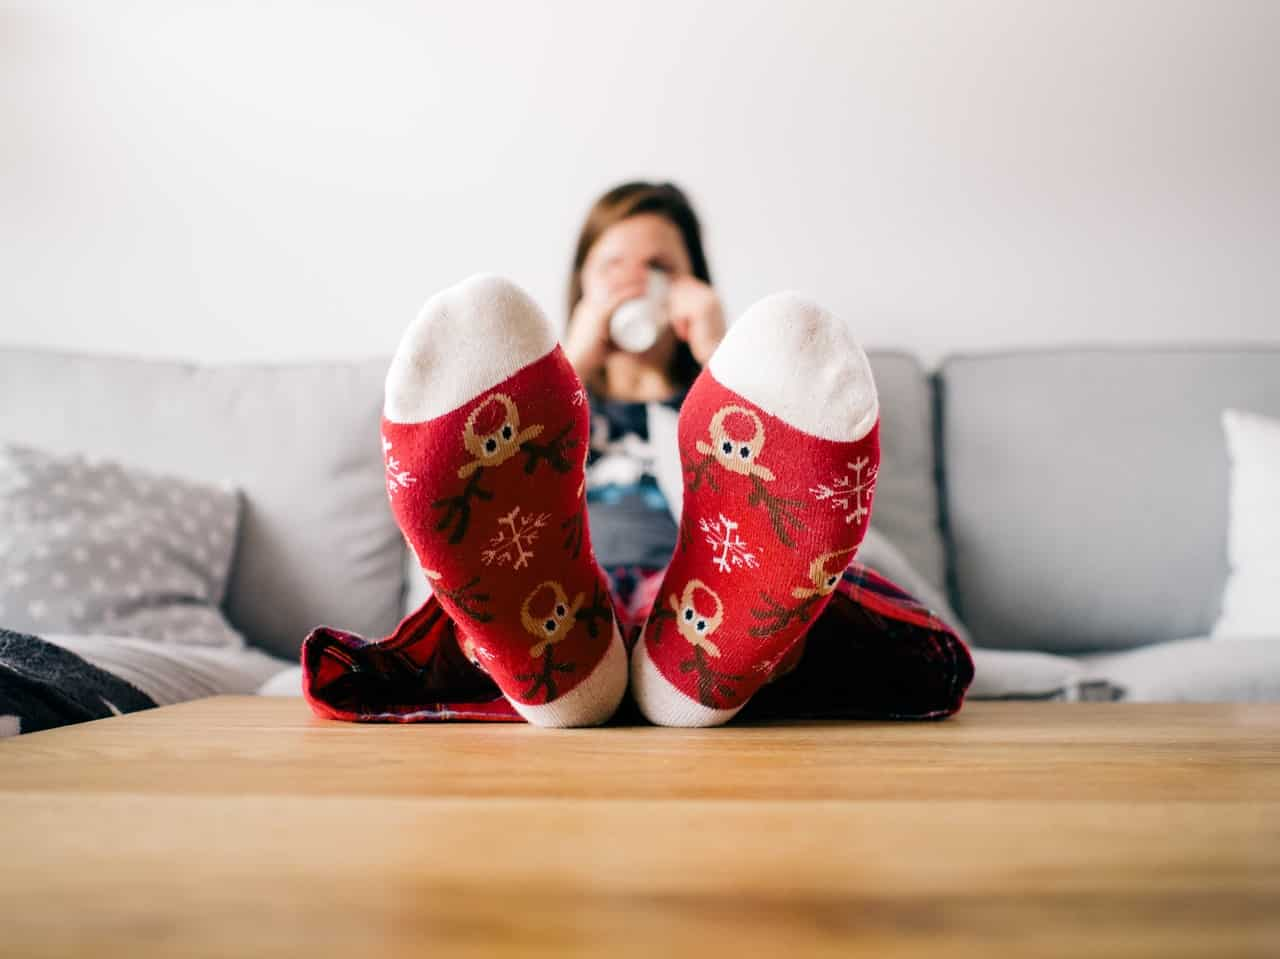 Christmas Stocking Stuffer Ideas for Teens | Looking for Stocking Stuffers? Here are more than 50 Christmas Stocking Stuffer Ideas that your entire family will love. #stockingstuffers #christmasgifts #frugalgifts #Christmas #HWS #healthywealthyskinny